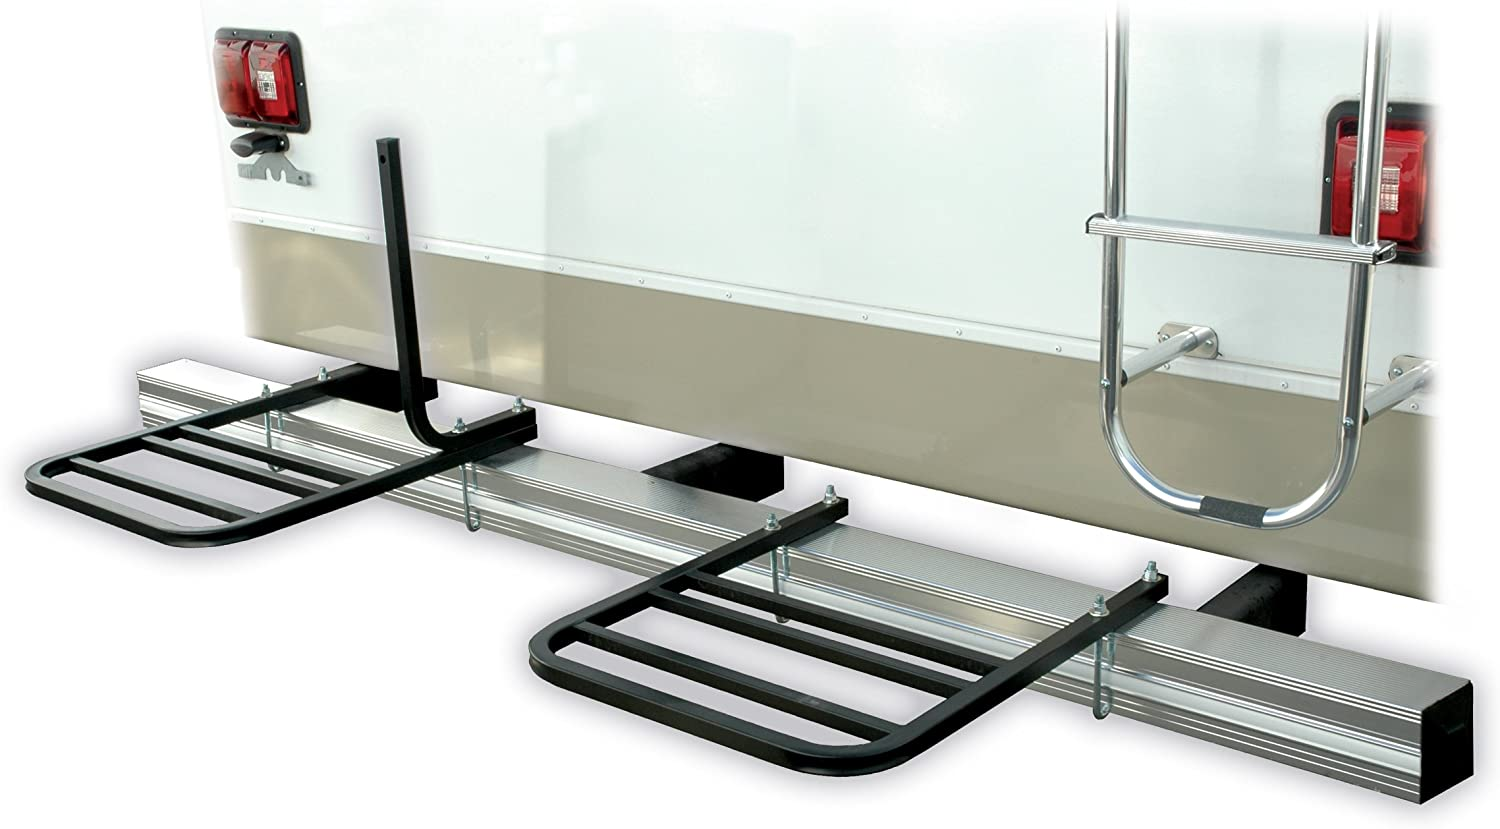 Swagman RV Approved 2-Bike Bumper Rack